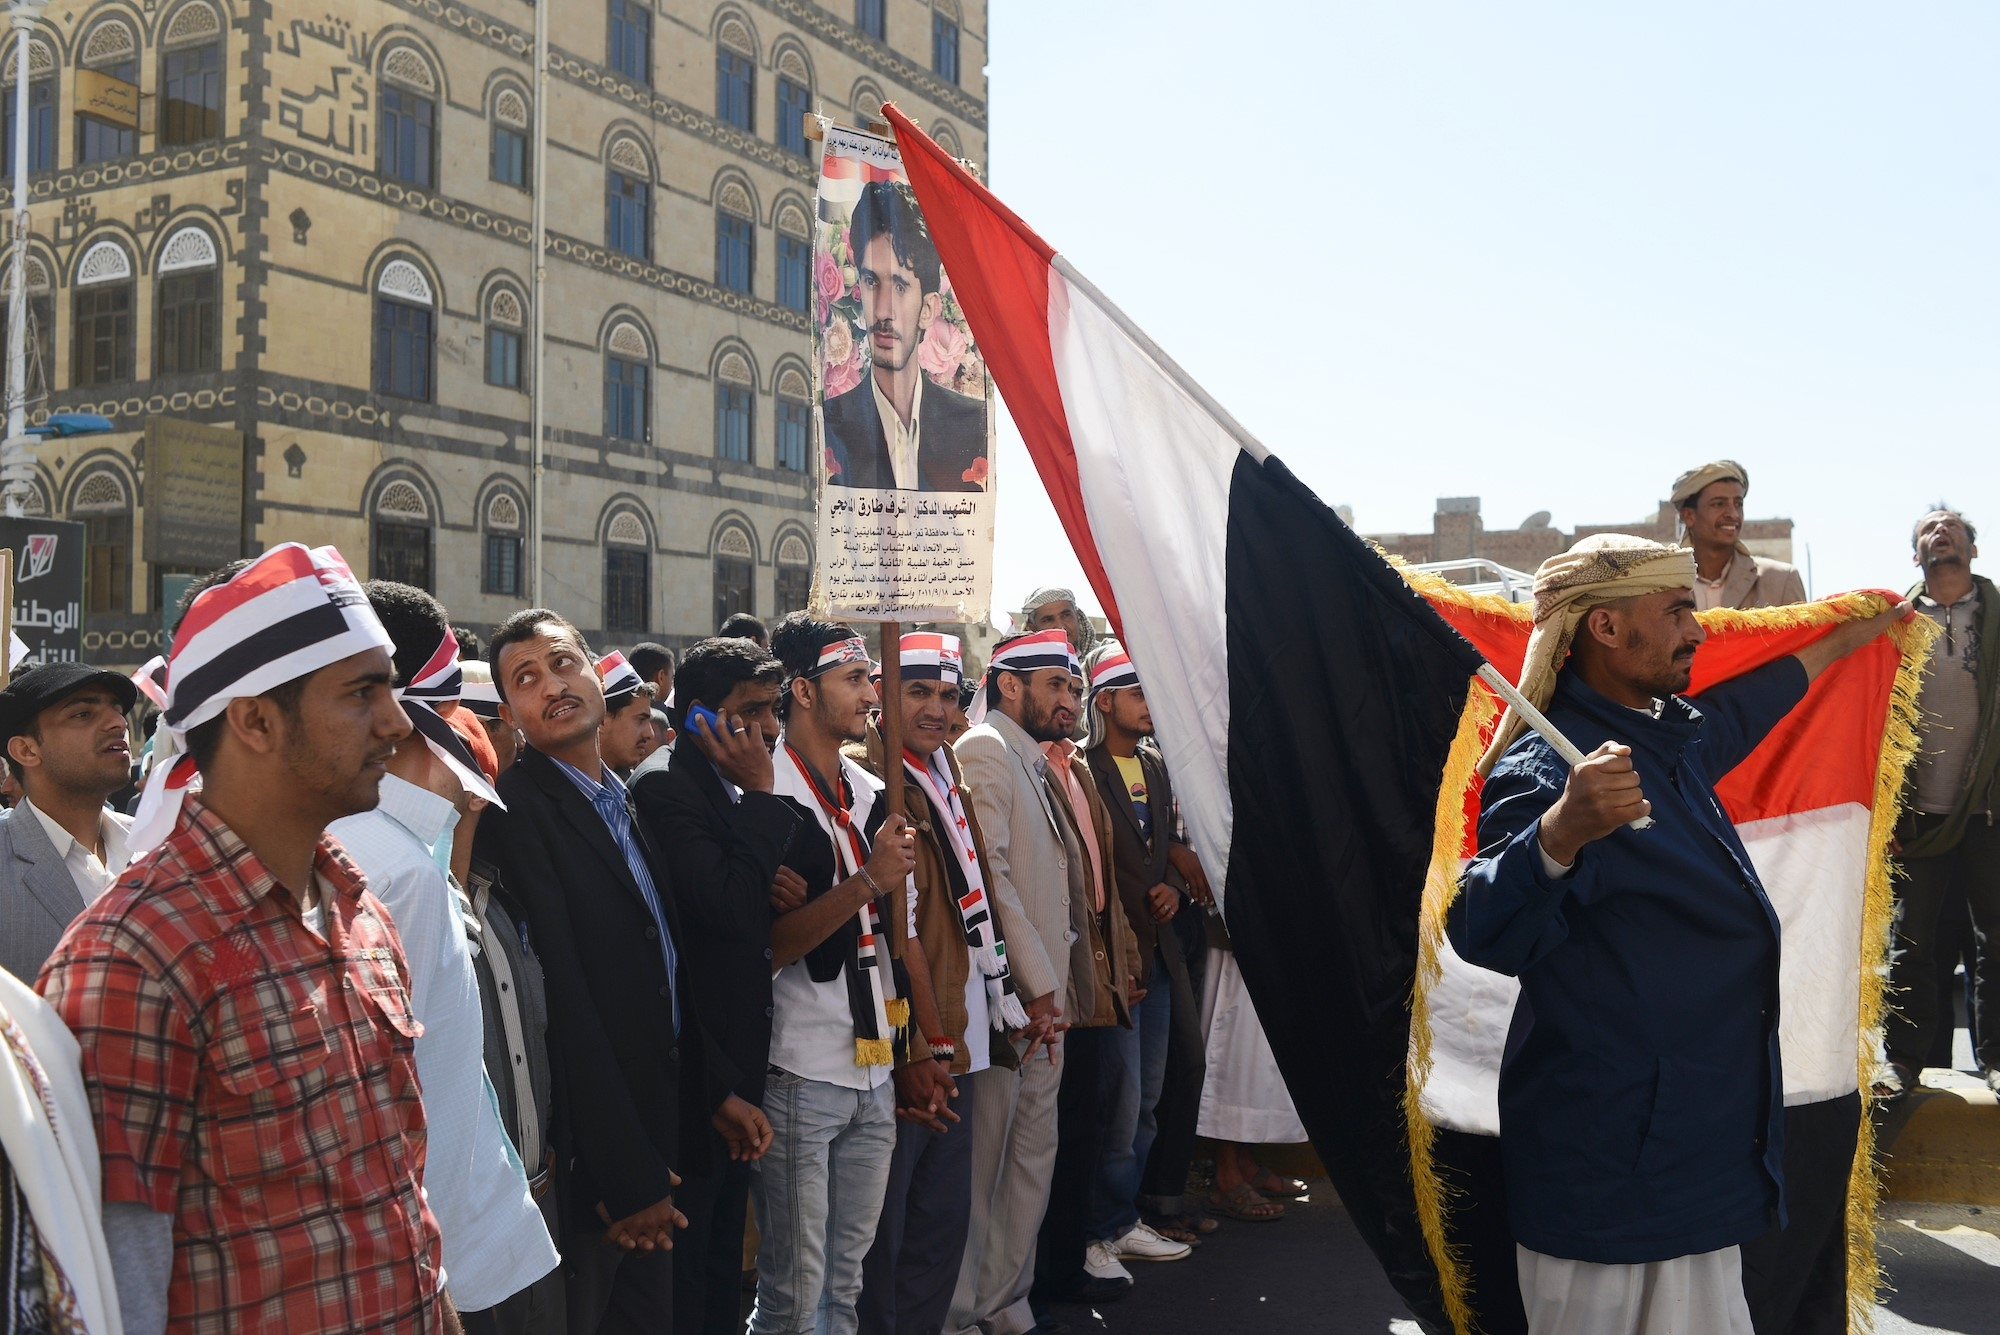 The politics driving Yemen's rising sectarianism